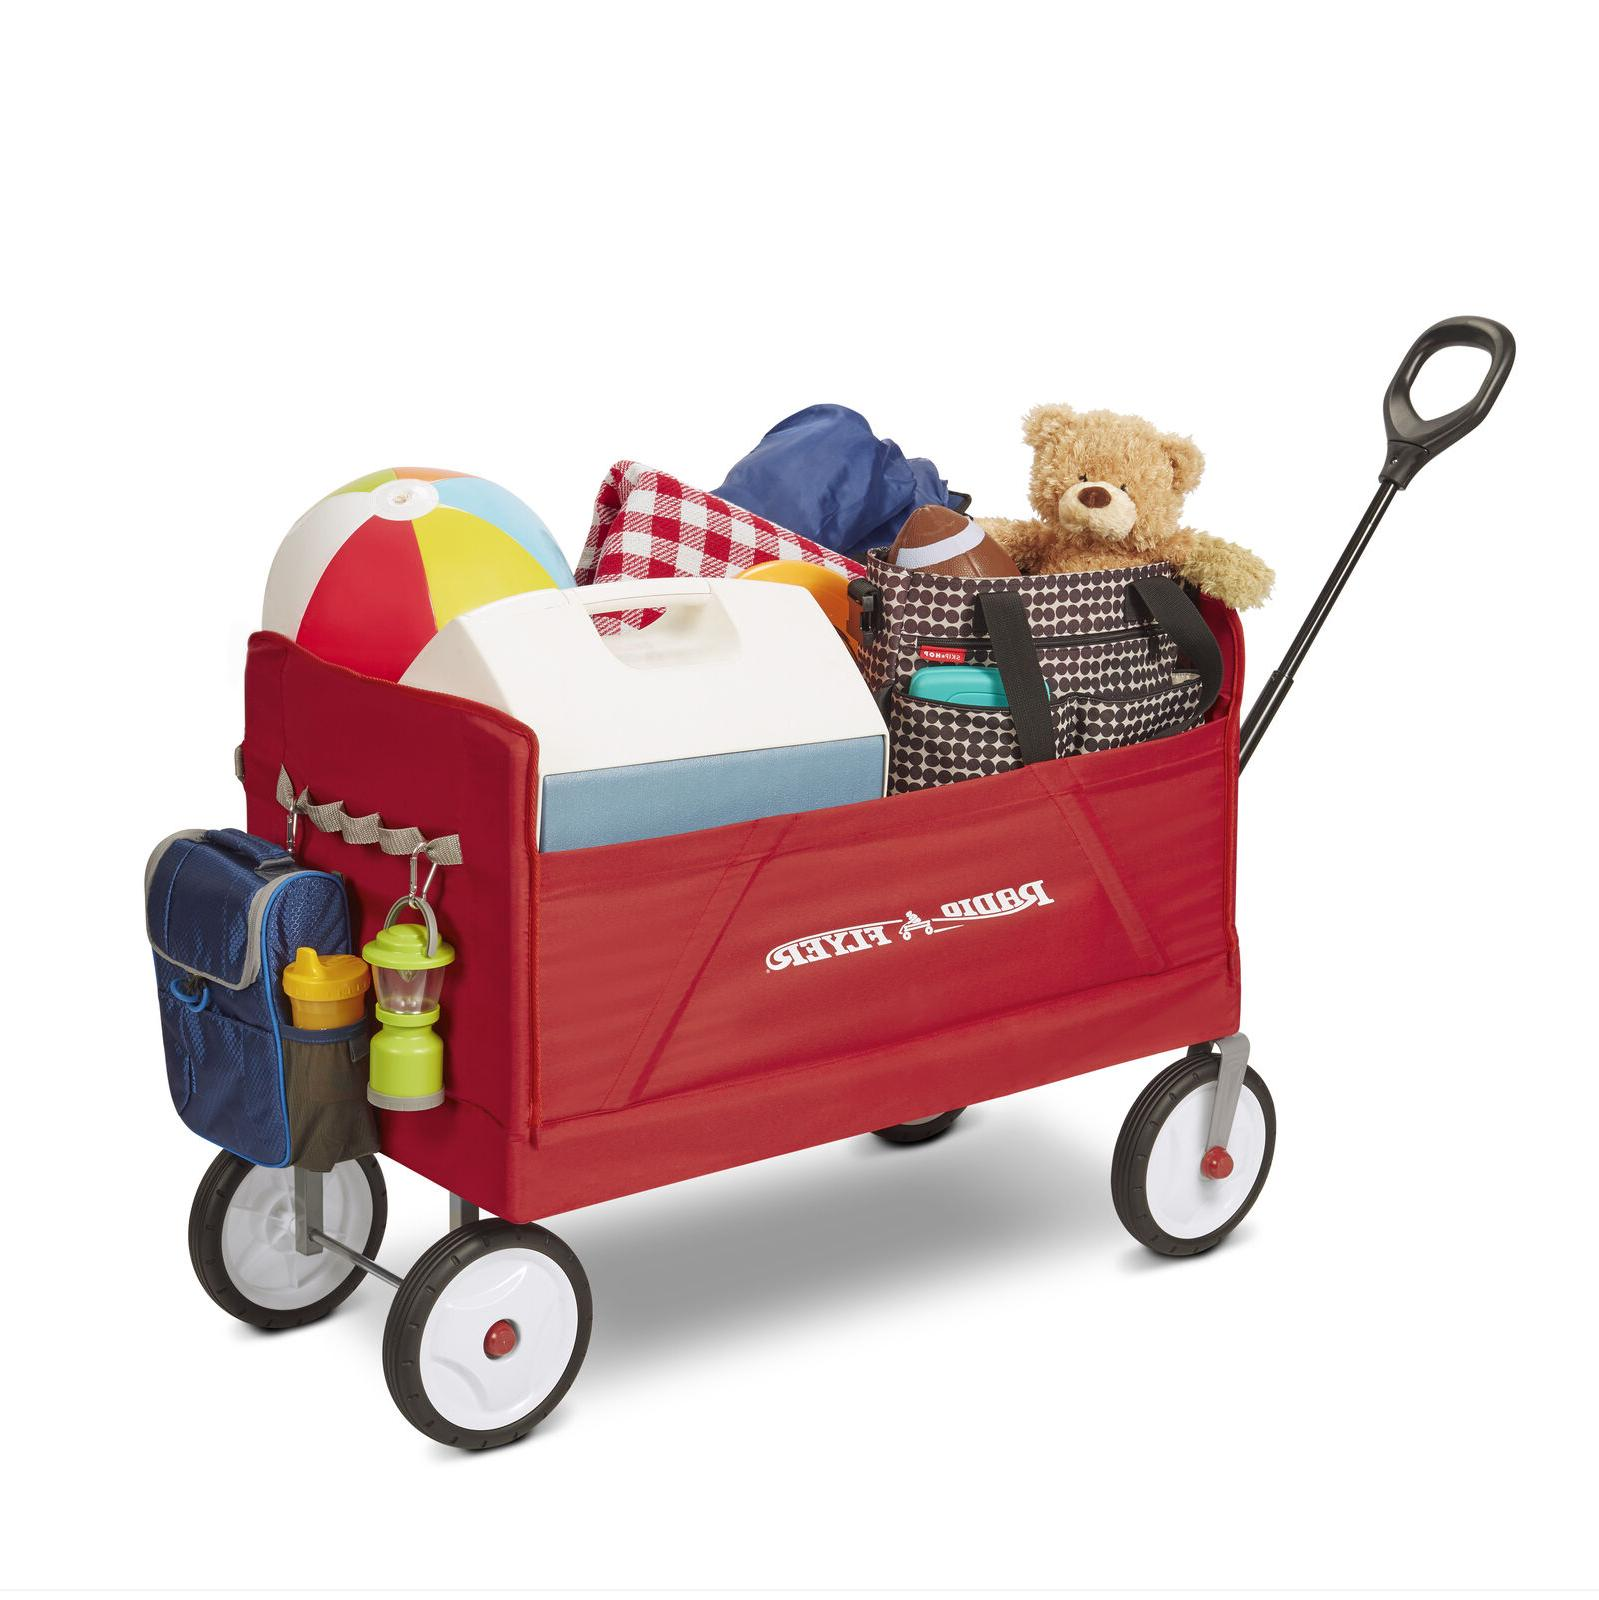 EZ Fold 3 in 1 Red Wagon Padded Seat Belts Bench Quiet Ride